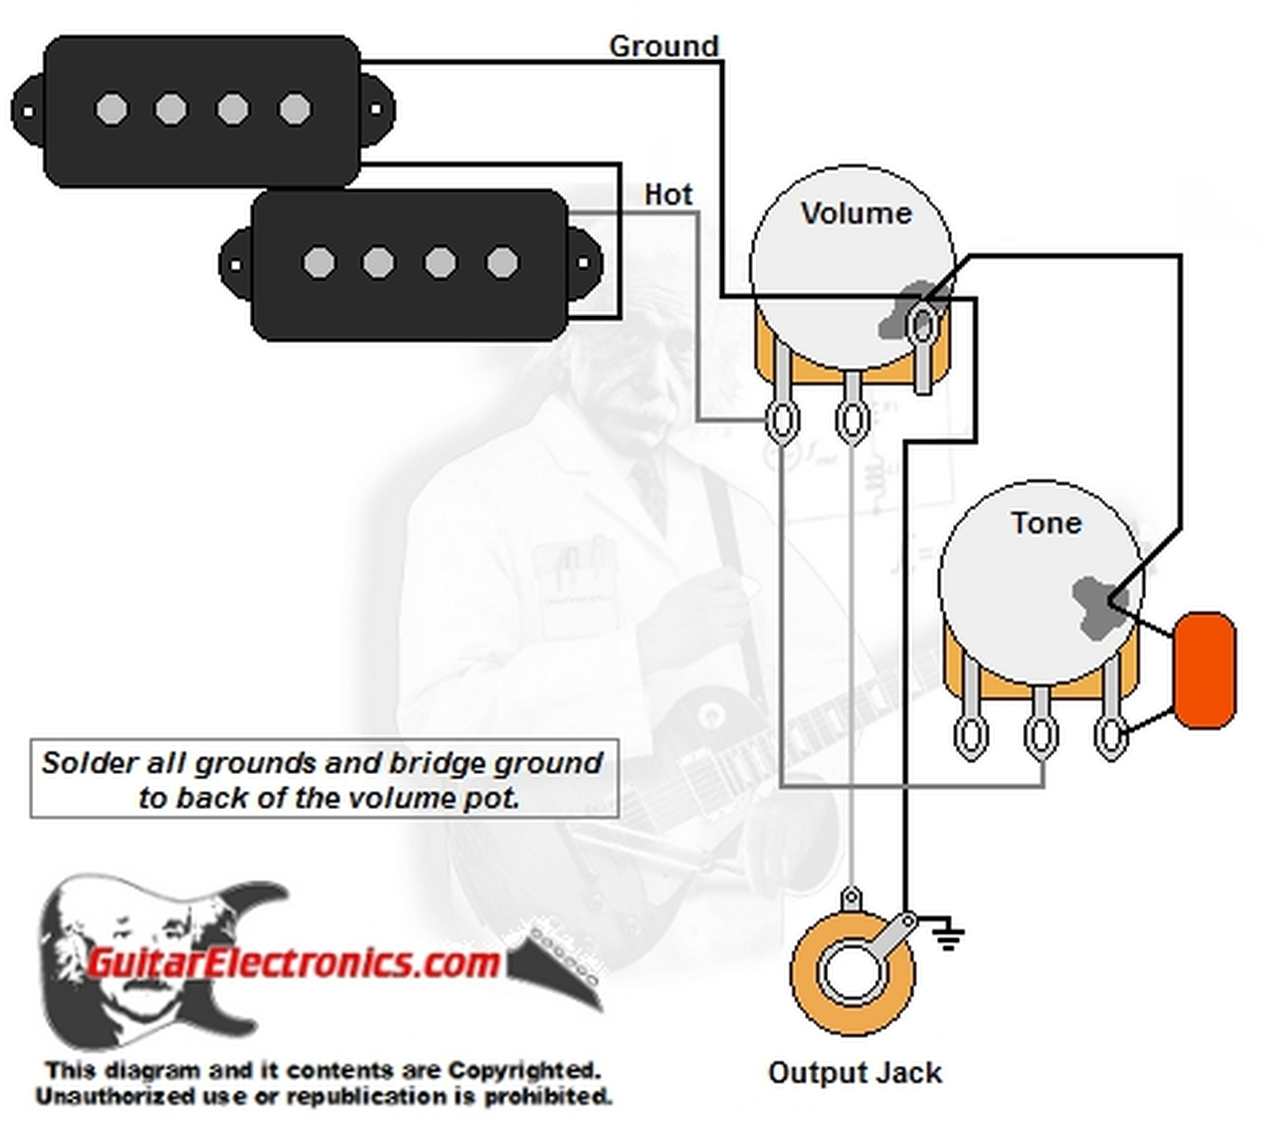 P-Bass Style Wiring Diagram | Bass 2 Pick Up Guitar Wiring Diagram |  | Guitar Electronics